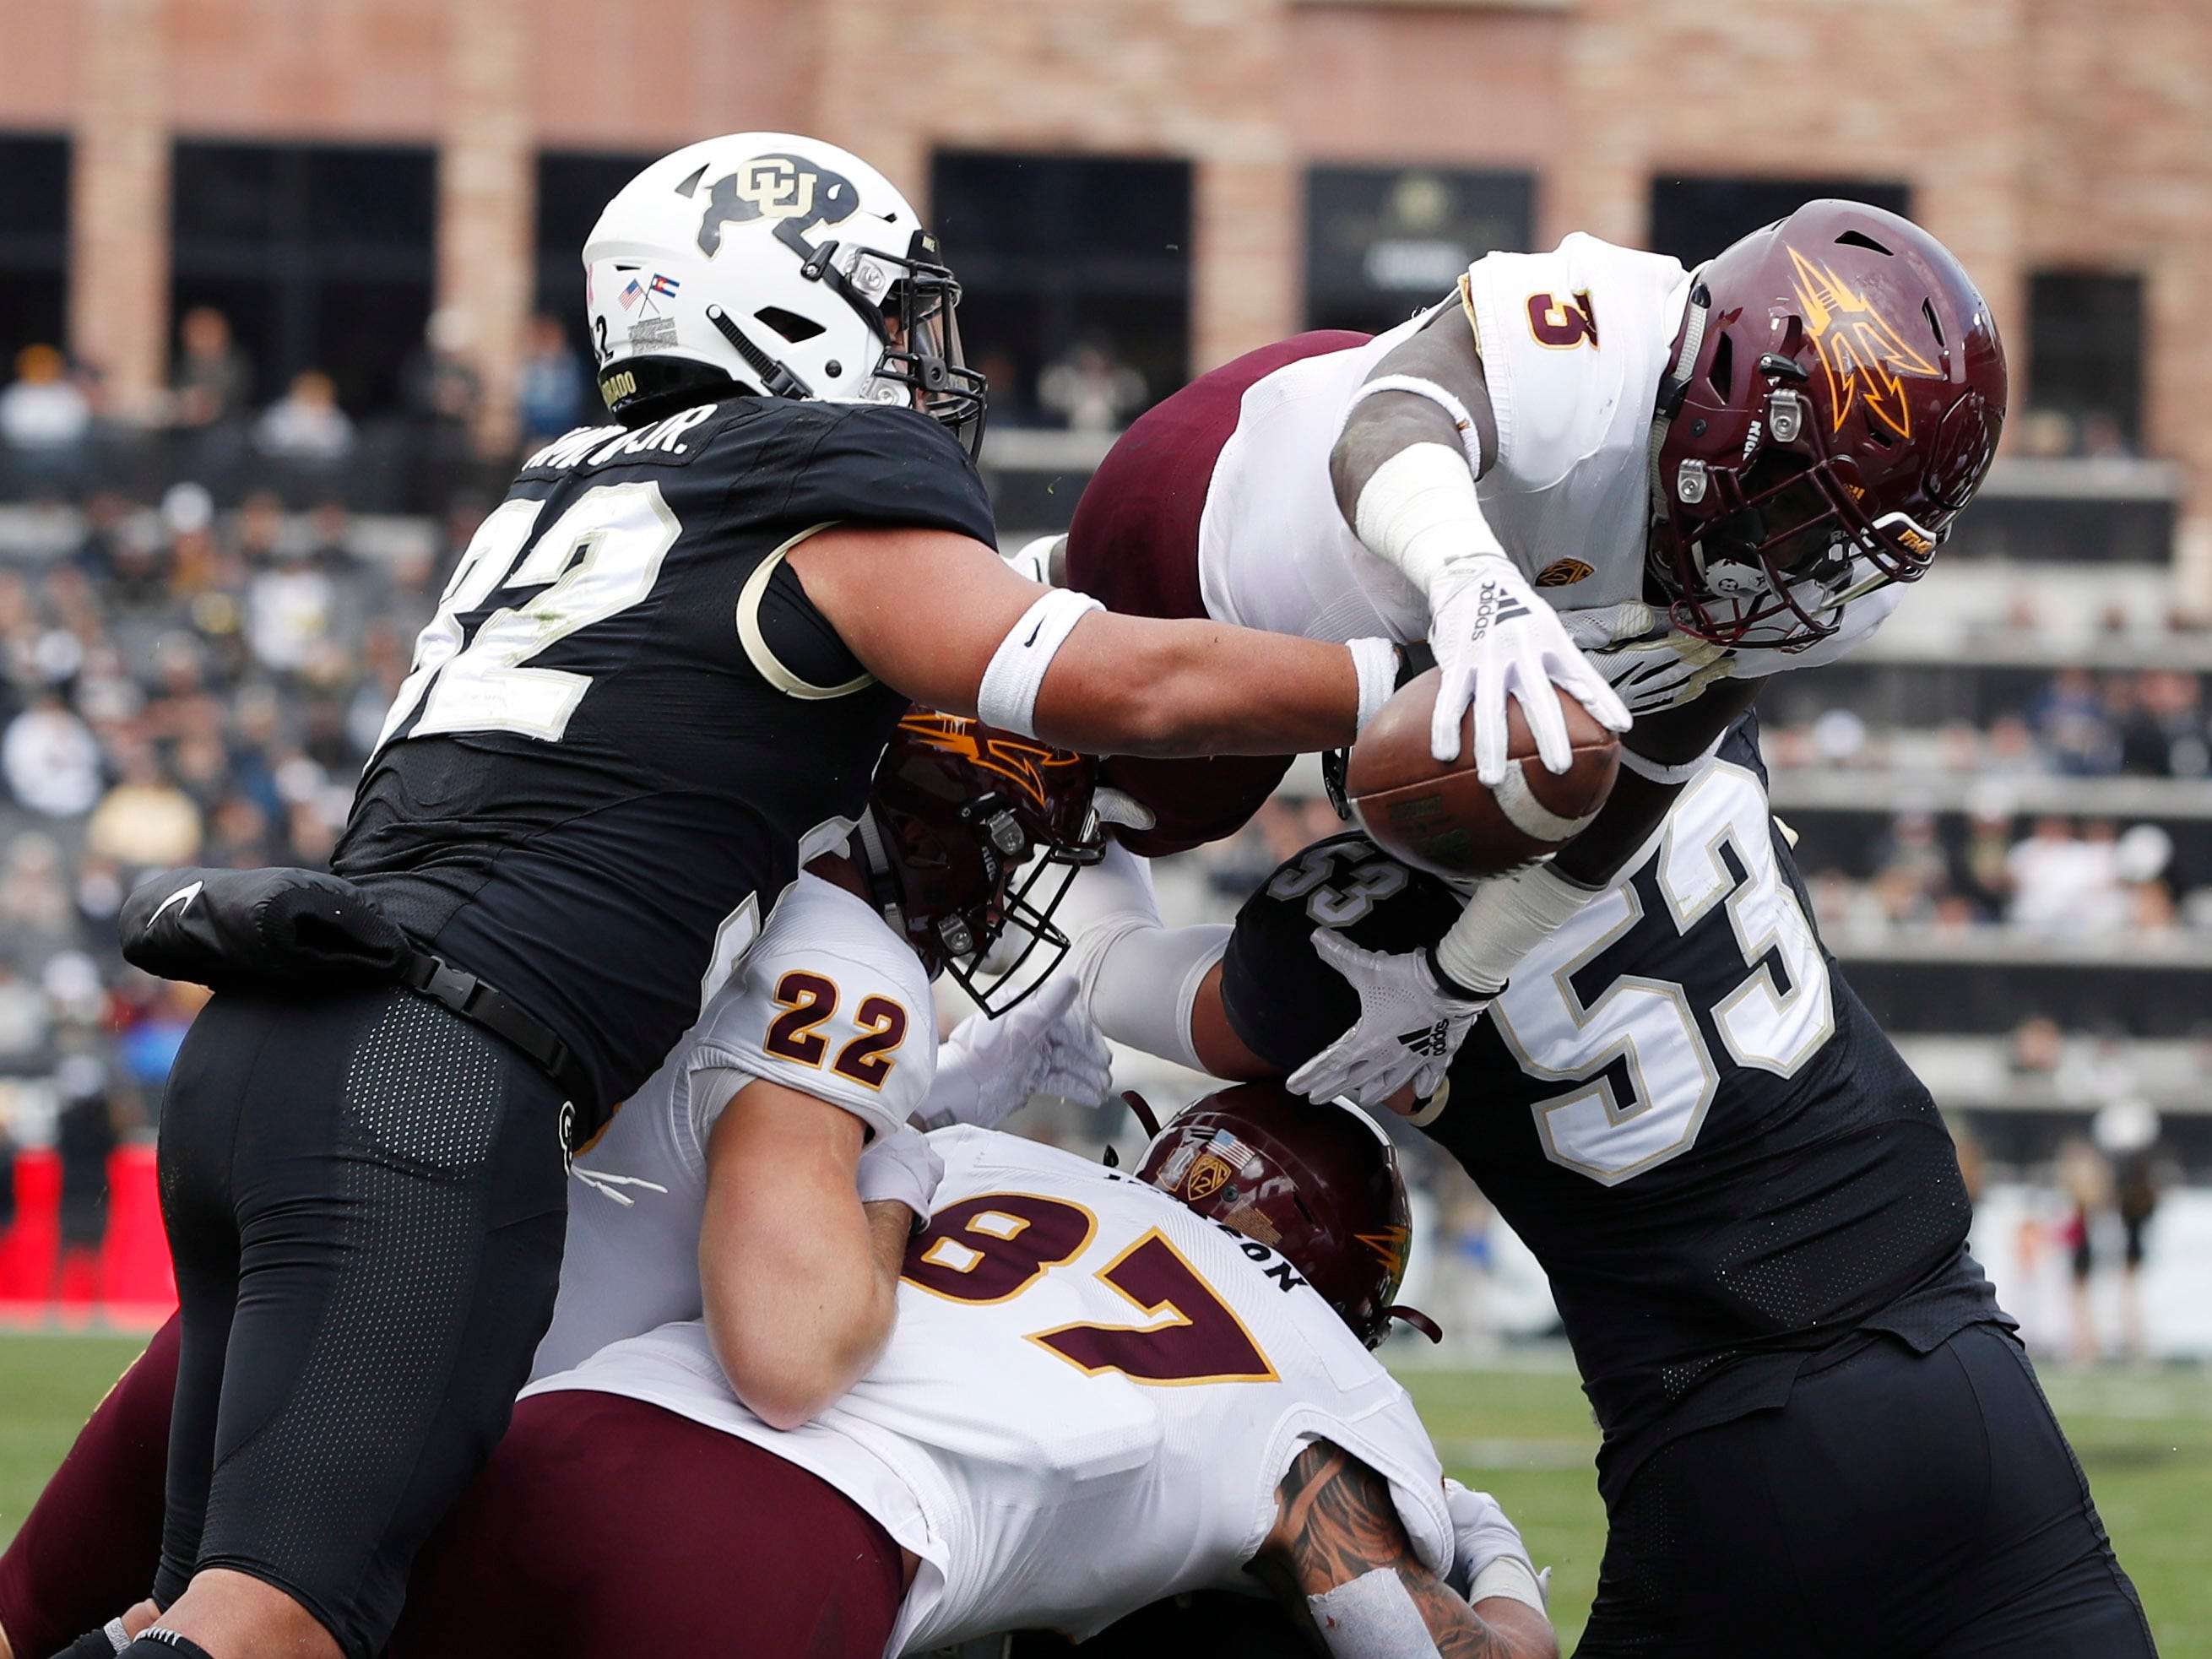 Arizona State running back Eno Benjamin, center, flies over Colorado linebackers Rick Gamboa, left, Nate Landman for a touchdown in the first half of an NCAA college football game Saturday, Oct. 6, 2018, in Boulder, Colo. (AP Photo/David Zalubowski)